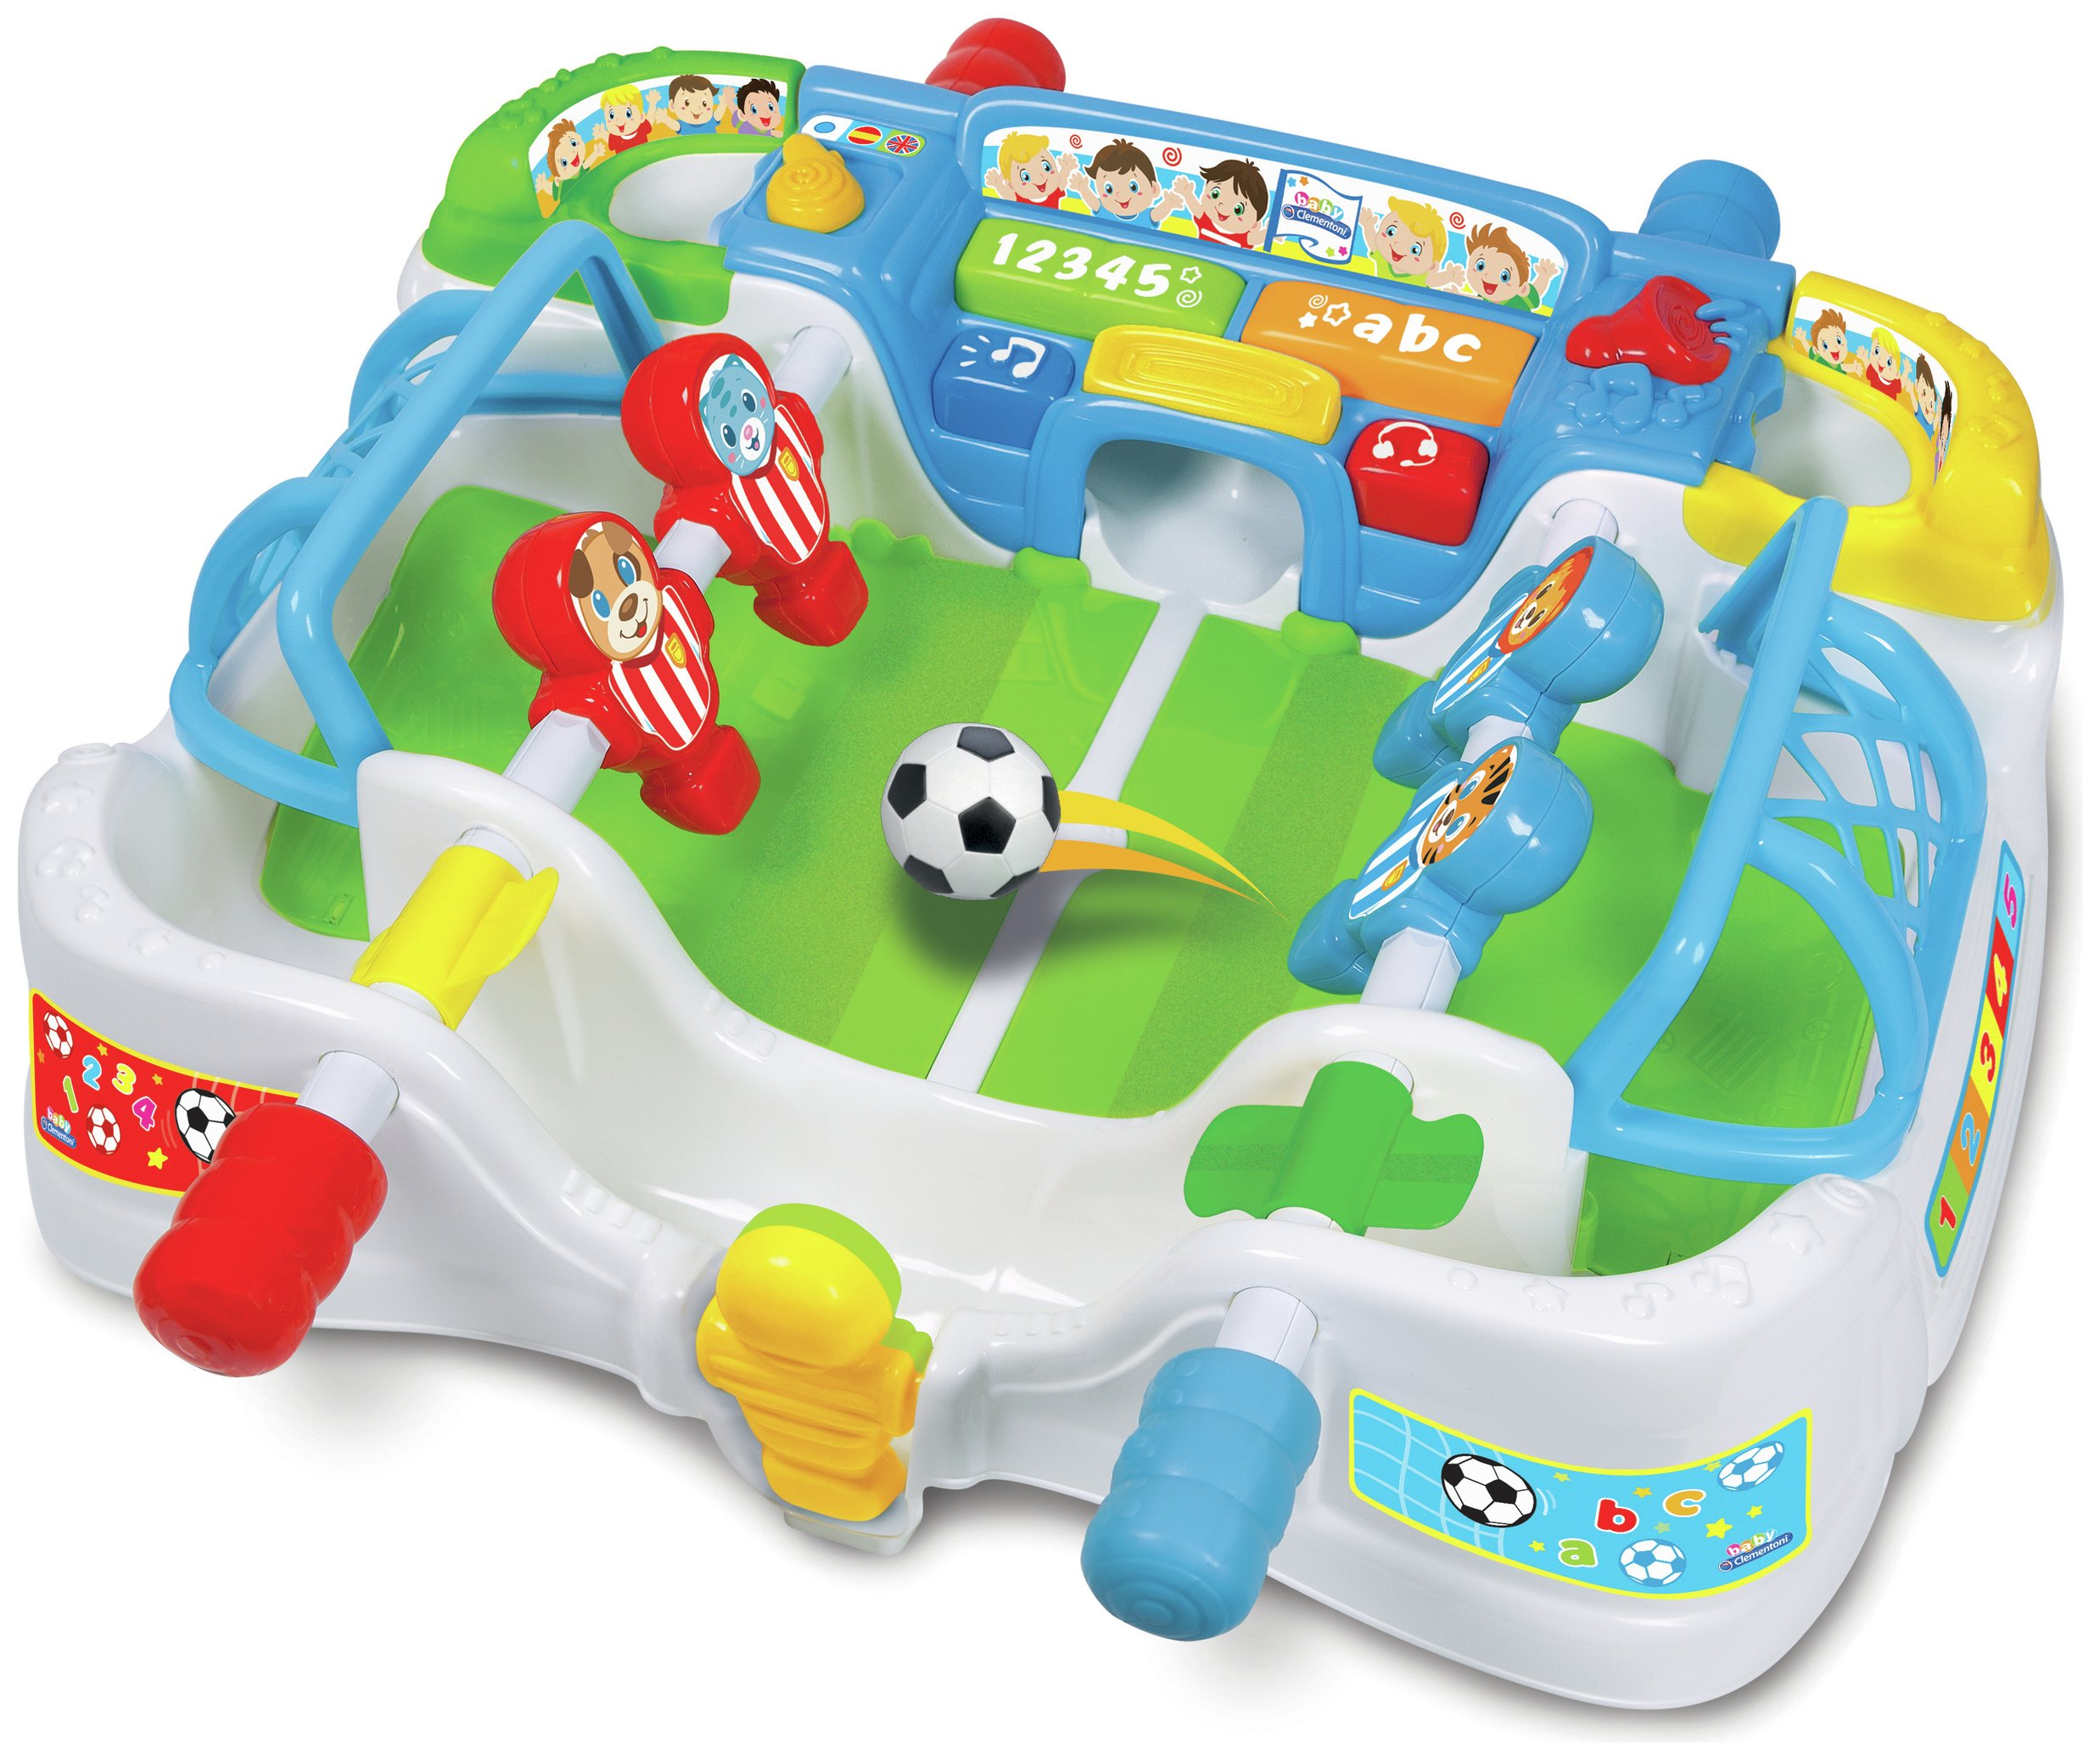 Image of Baby Clementoni Interact Football Table